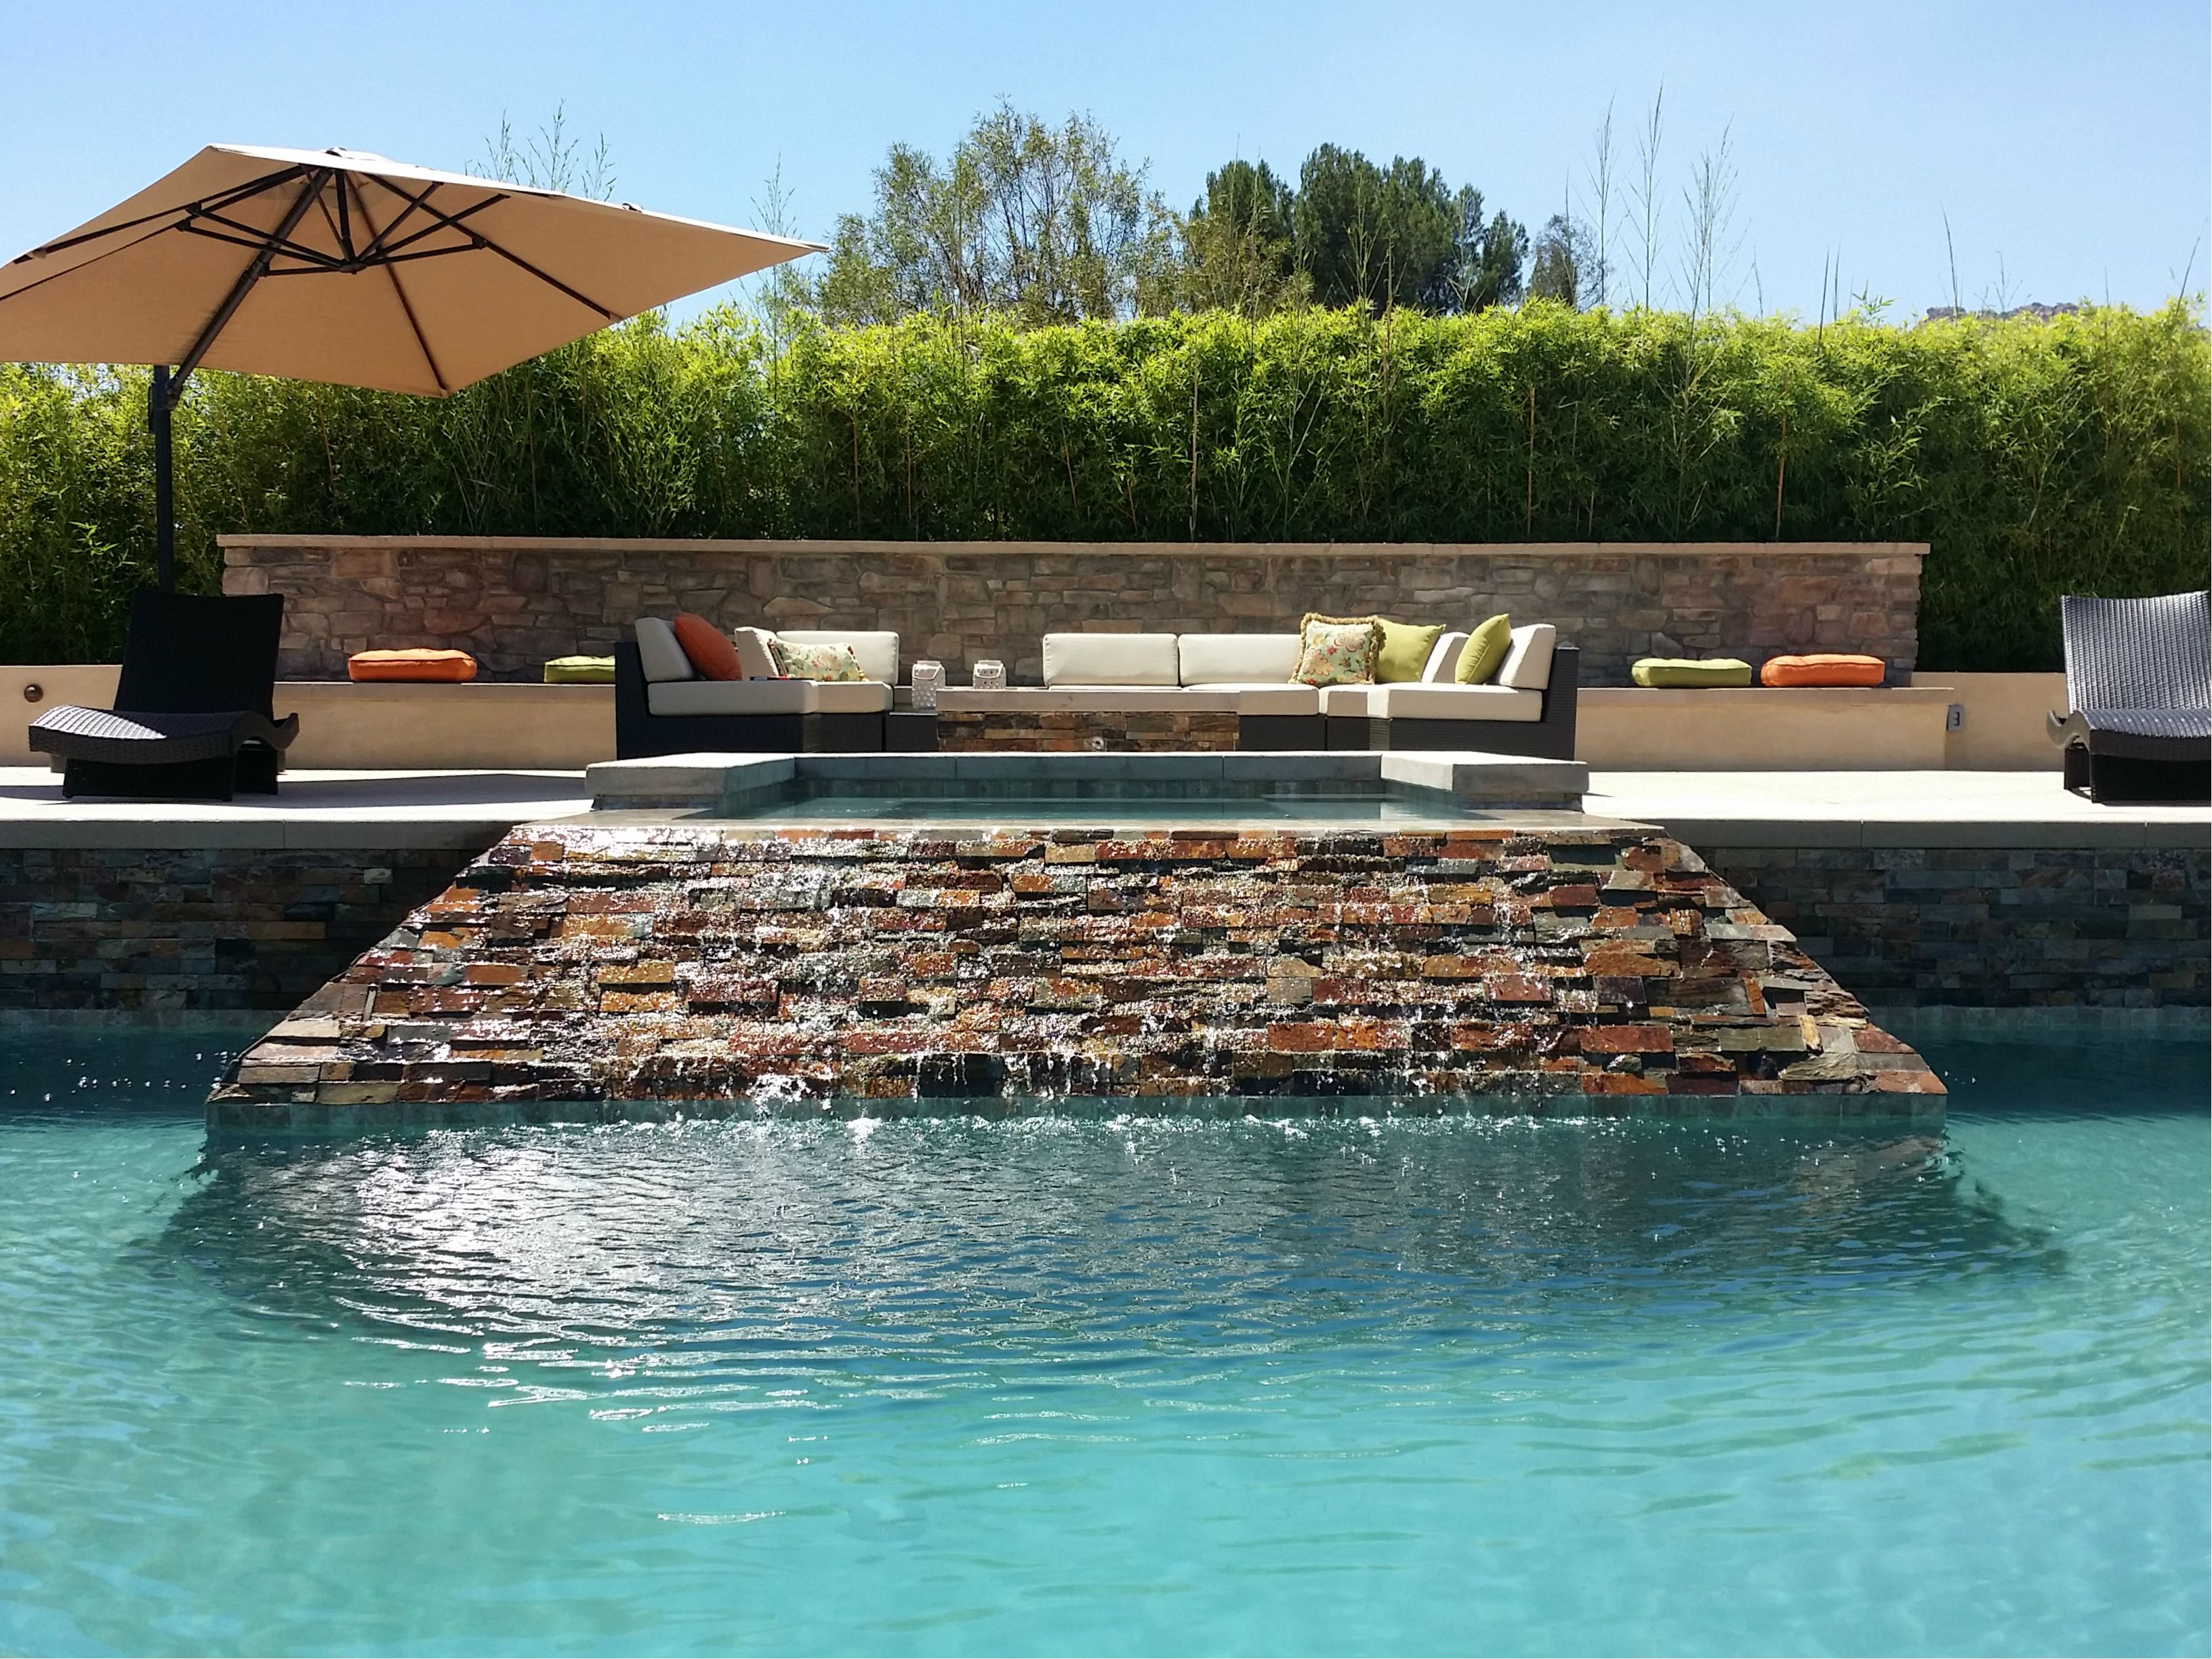 Large Pool Space Waterfall Feature Fire Features And Outdoor Seating Area Los Angeles Ca Www Inte Backyard Renovations Custom Backyard Outdoor Seating Areas